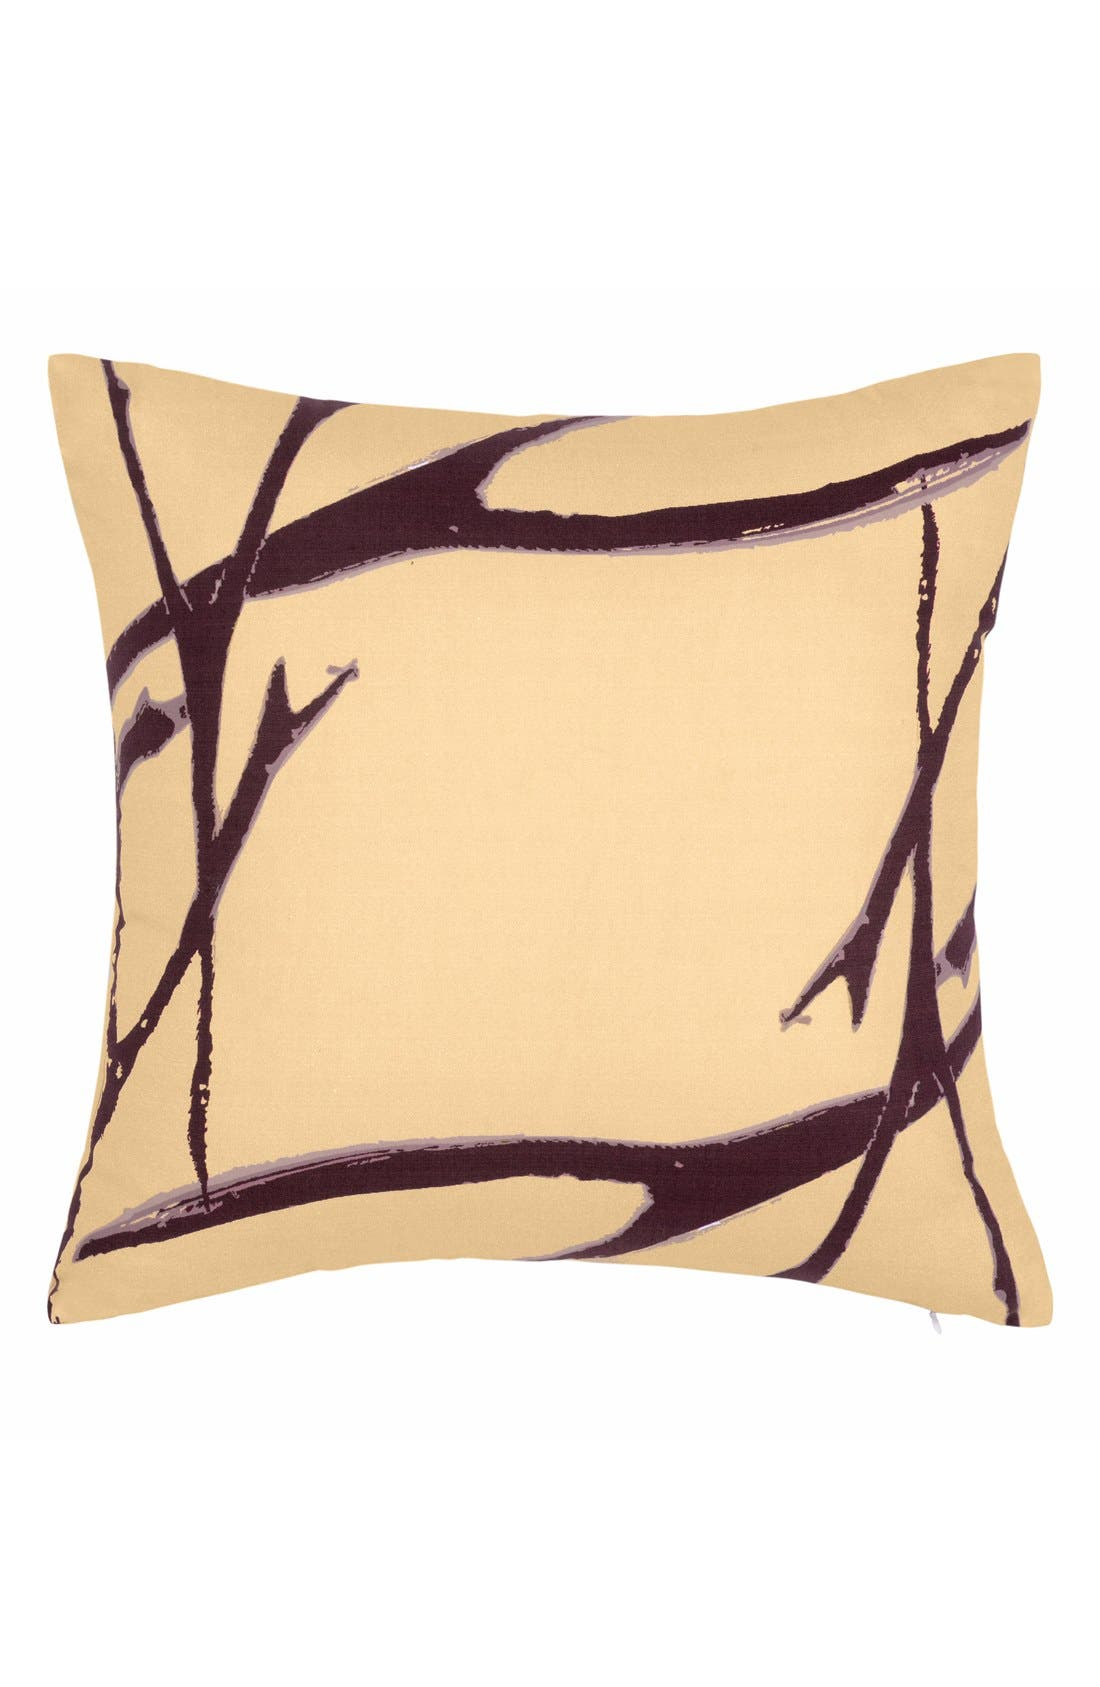 'Blossom Branches' Pillow,                             Main thumbnail 1, color,                             800